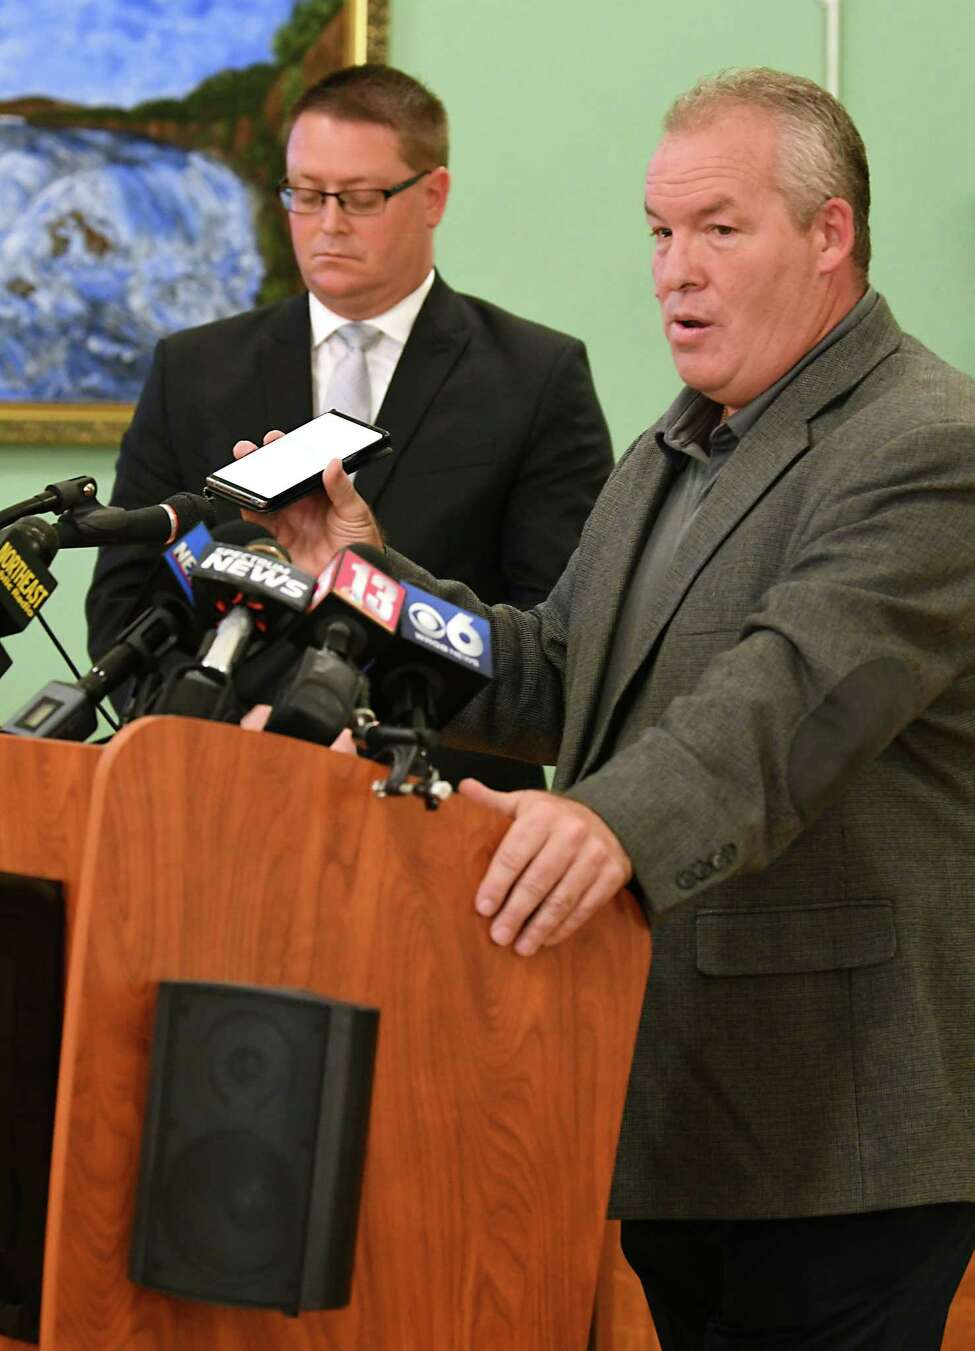 Cohoes Mayor Shawn Morse plays an audio of his upset wife from his cell phone as holds a press conference to speak out about the latest allegations and what's been going on with his family's life at Cohoes City Hall on Monday, Sept. 17, 2018 in Cohoes, N.Y. Morse said he doesn't plan on stepping down from his job. His attorney Joseph Ahearn listens at left. (Lori Van Buren/Times Union)